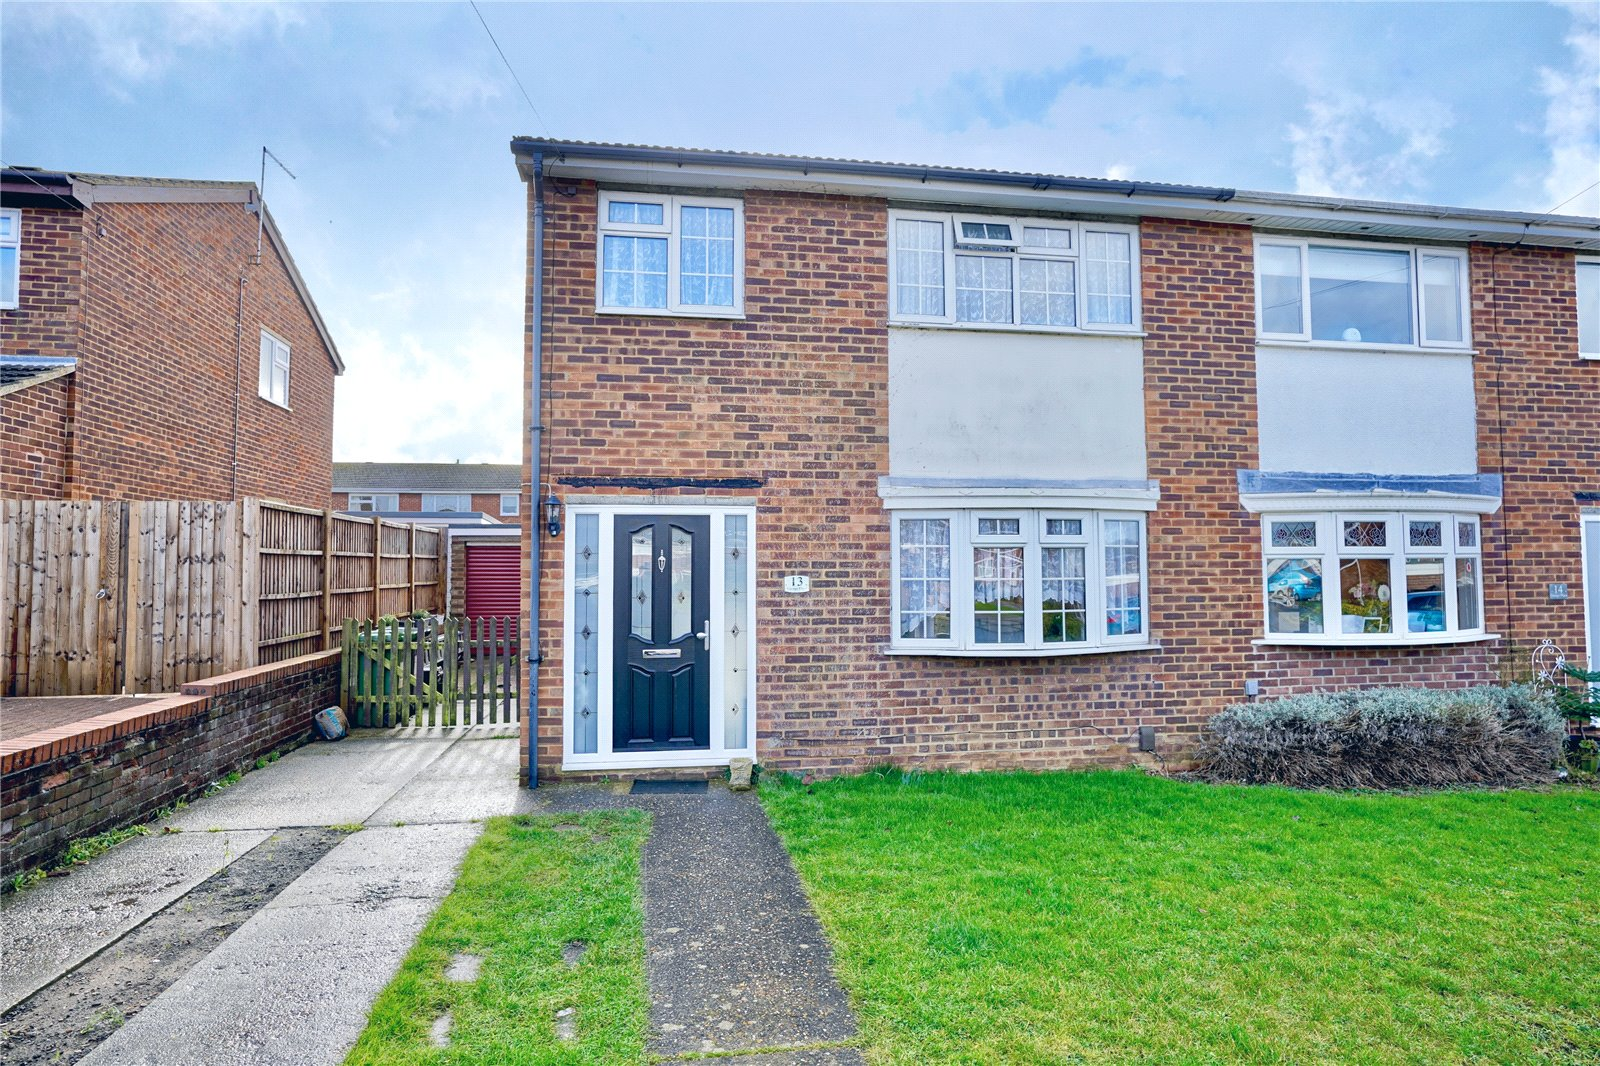 3 bed house for sale in St. Neots, George Place, PE19 2QG, PE19